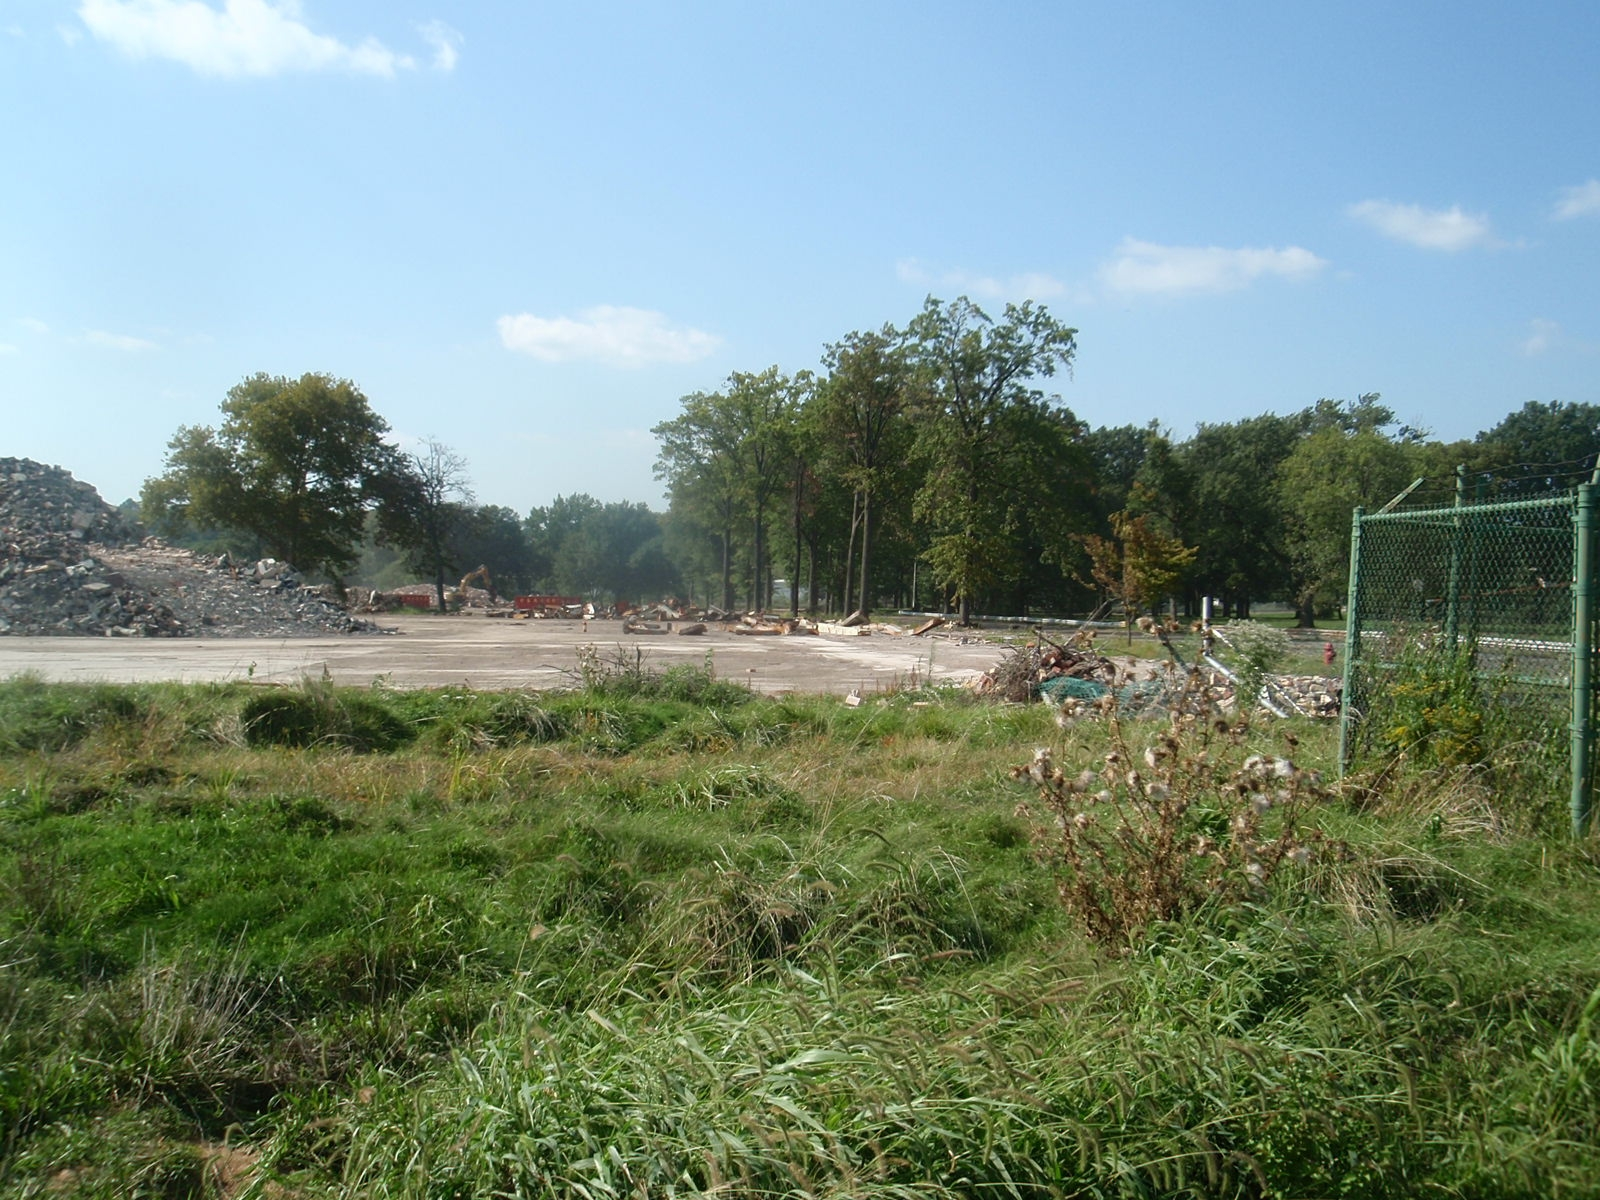 Image of Plt Demol and The Park that Fronted the Complex.